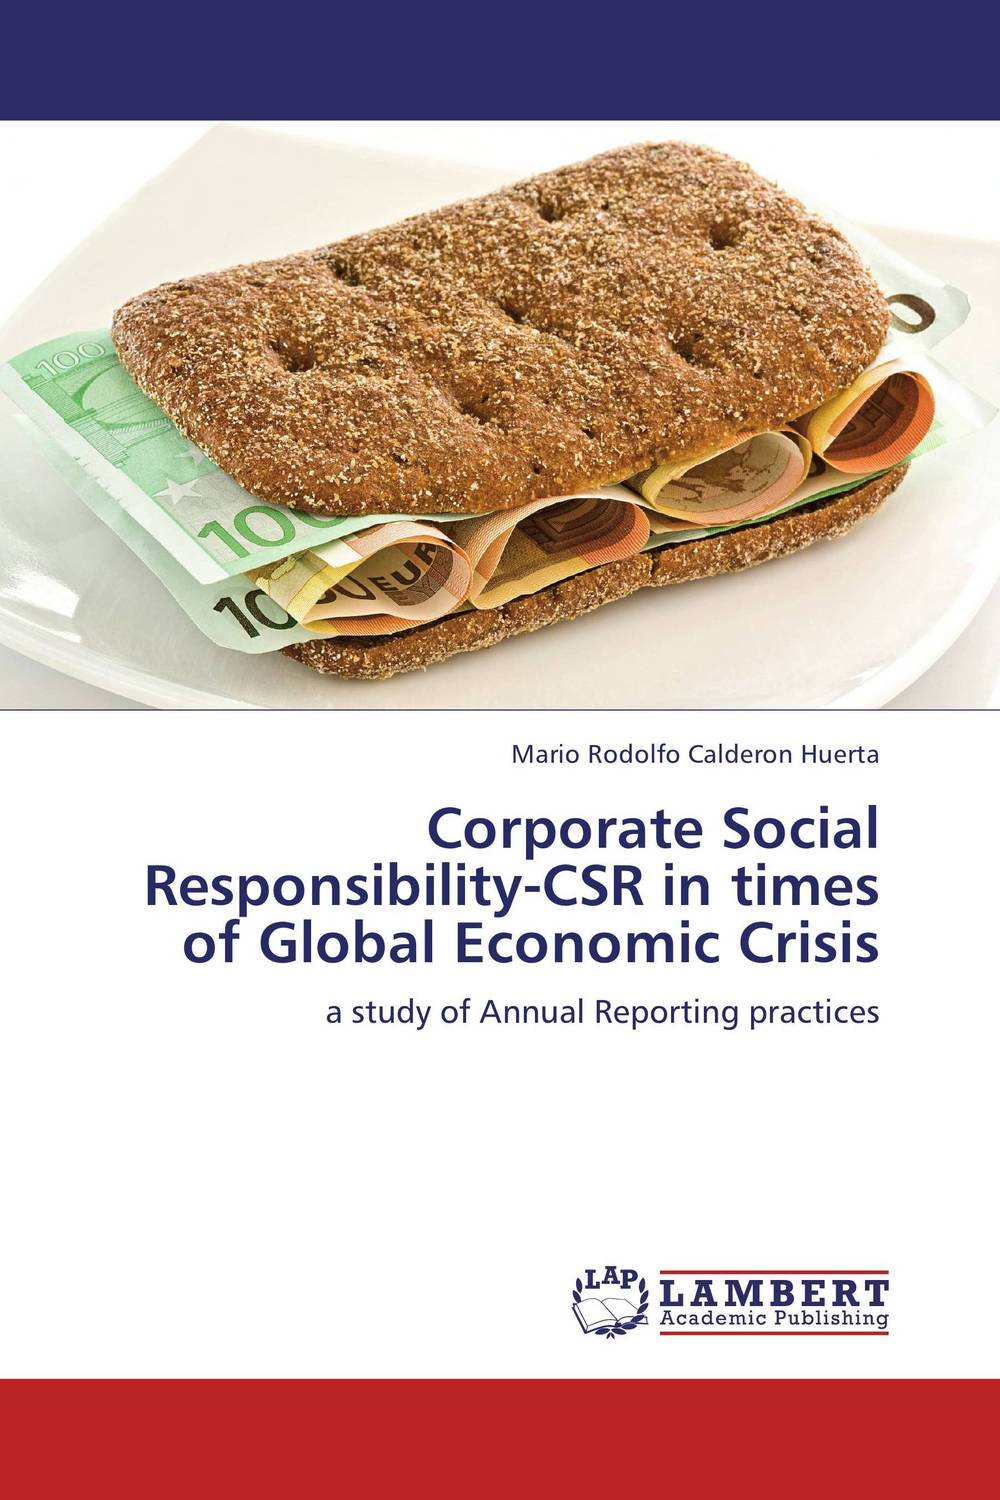 Corporate Social Responsibility-CSR in times of Global Economic Crisis dan zheng the impact of employees perception of corporate social responsibility